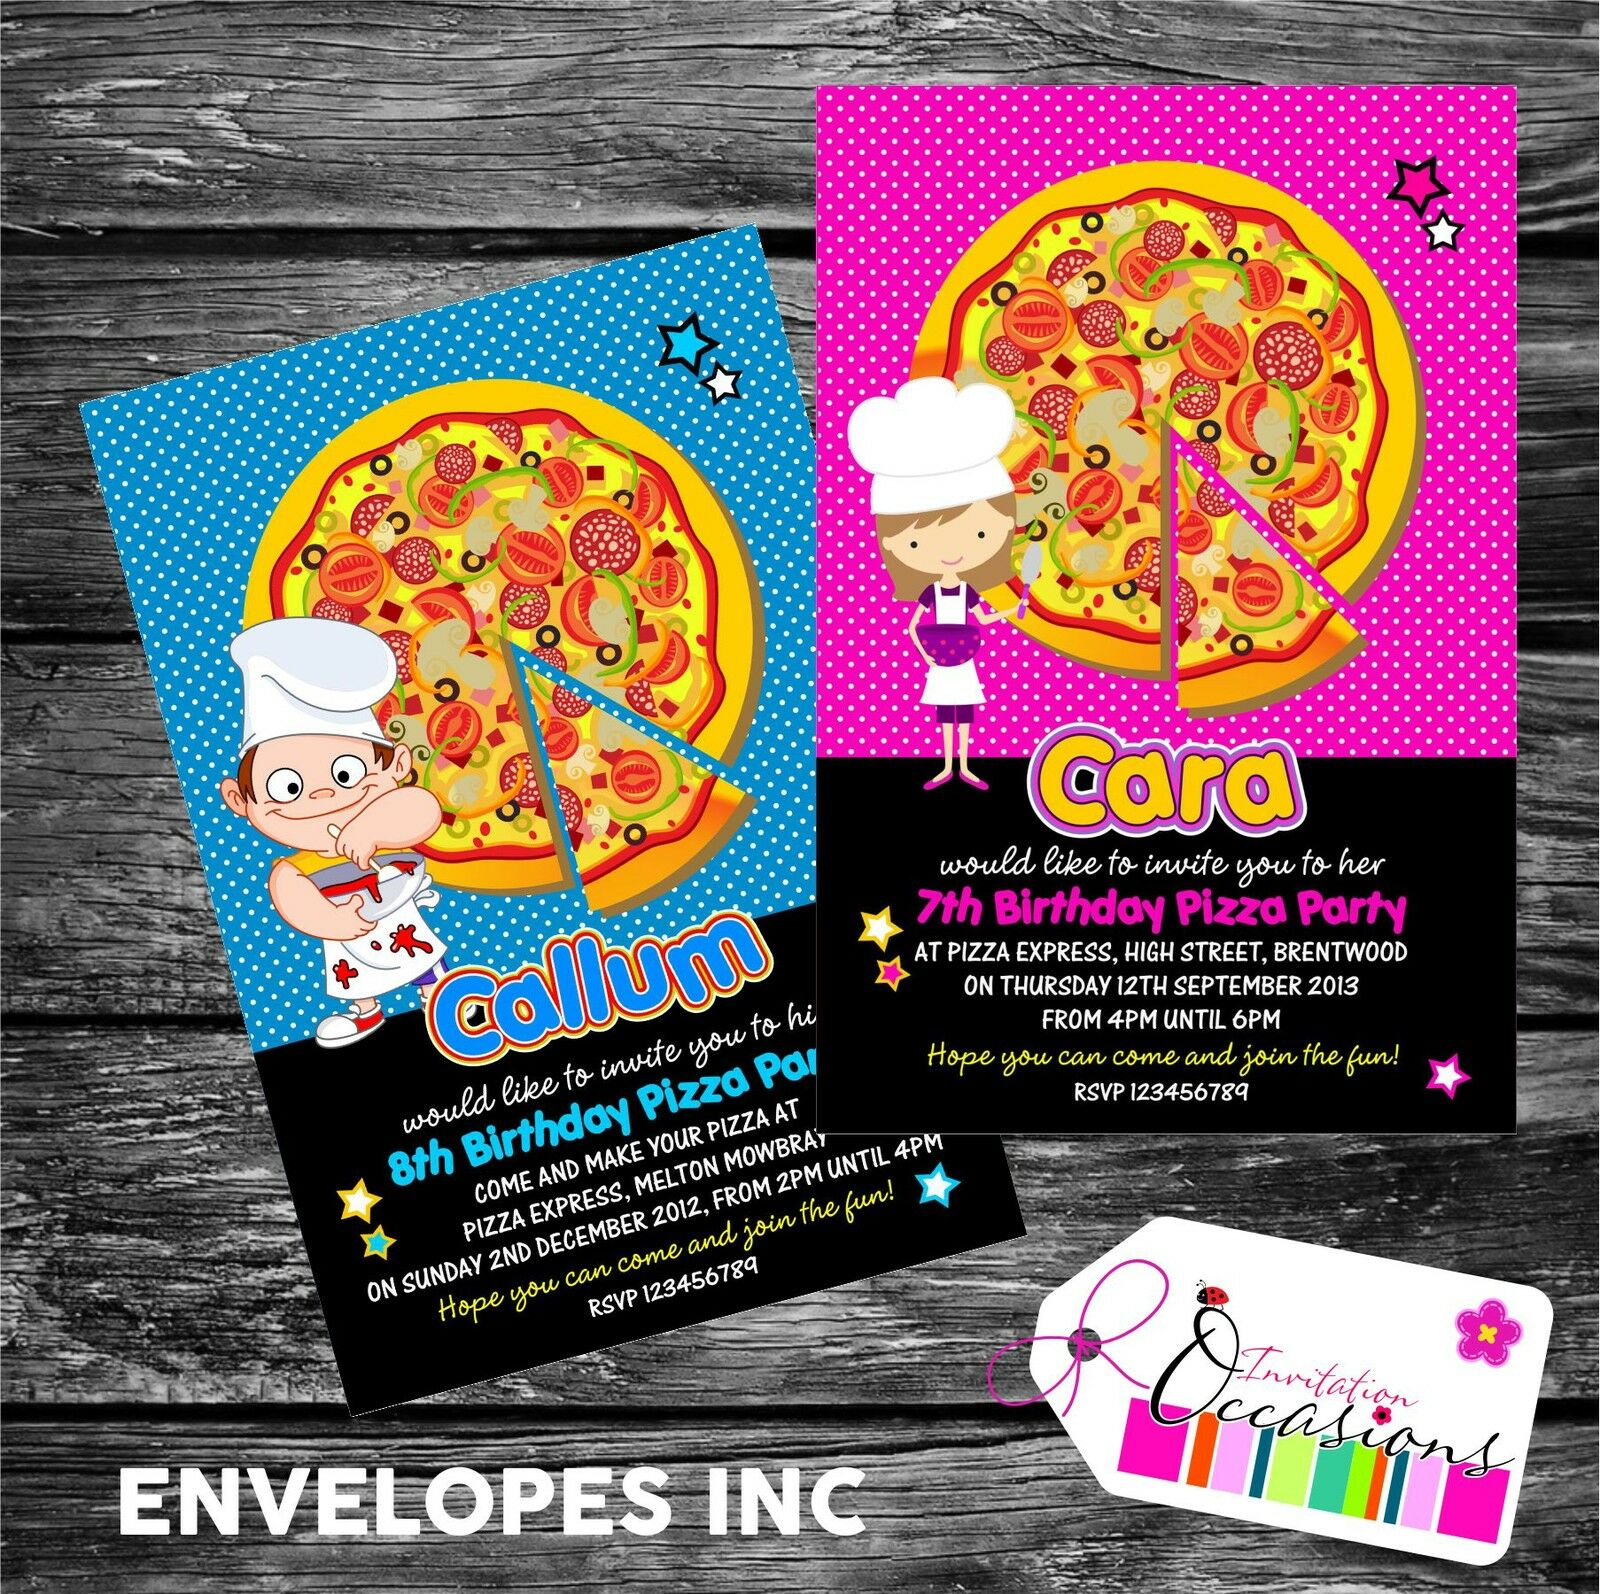 Personalised Birthday Invitations Pizza Making Party X 5 For Sale